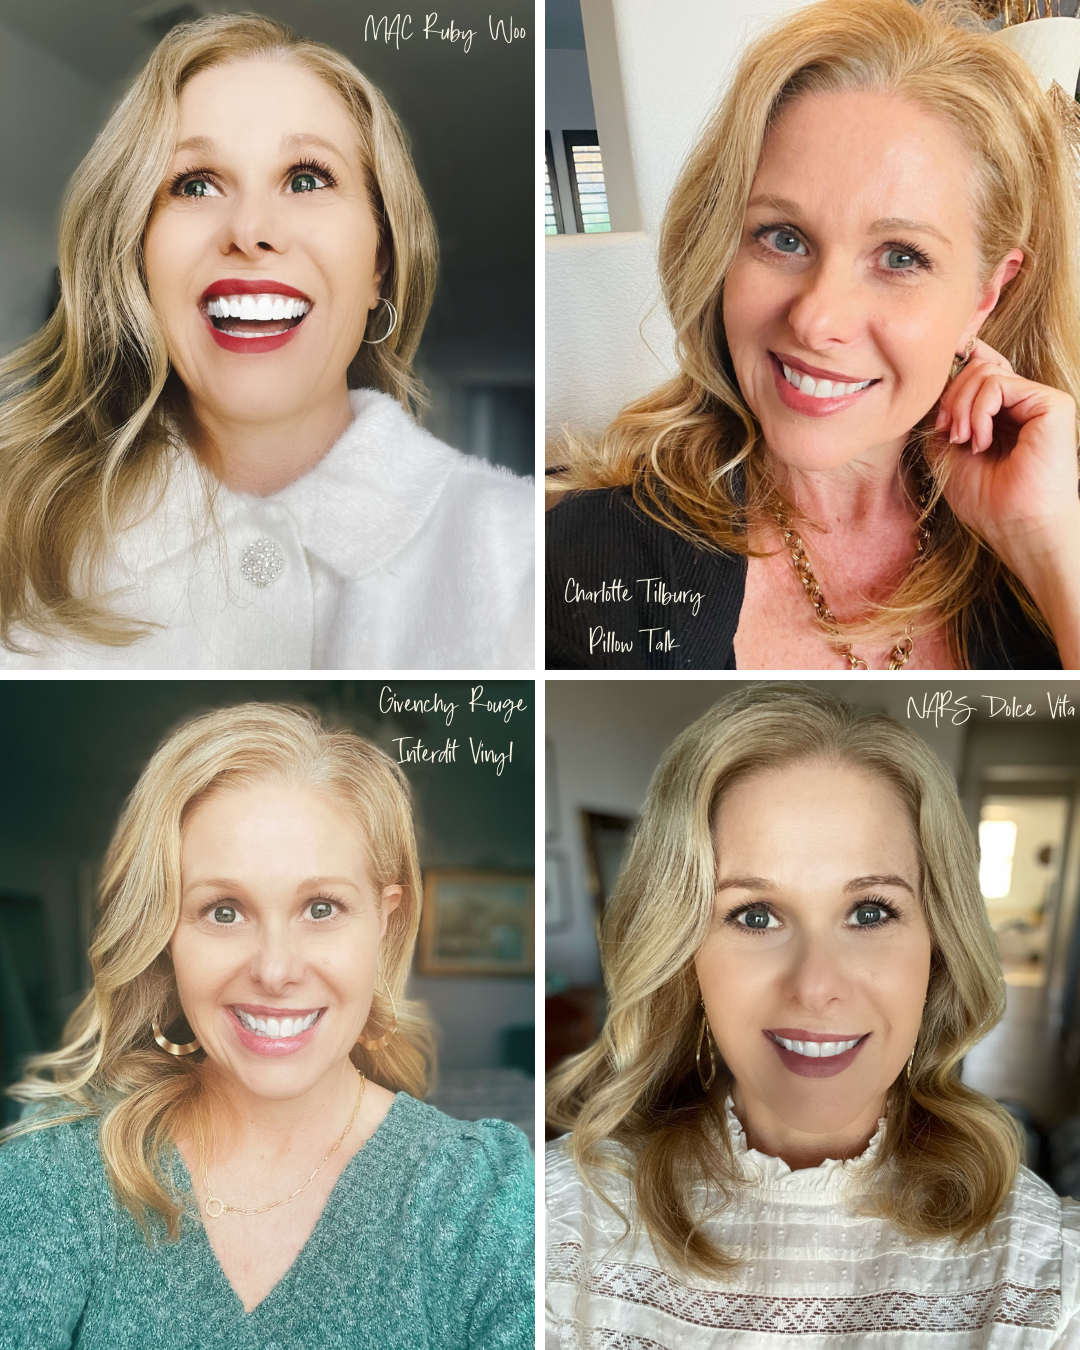 Go-To Lip Colors For Women Over 40 - Susan Wearing 4 Lip Colors including MAC Ruby Woo, Charlotte Tilbury Pillow Talk, Givenchy Rouge Interdit Vinyl, and NARS Dolce Vita